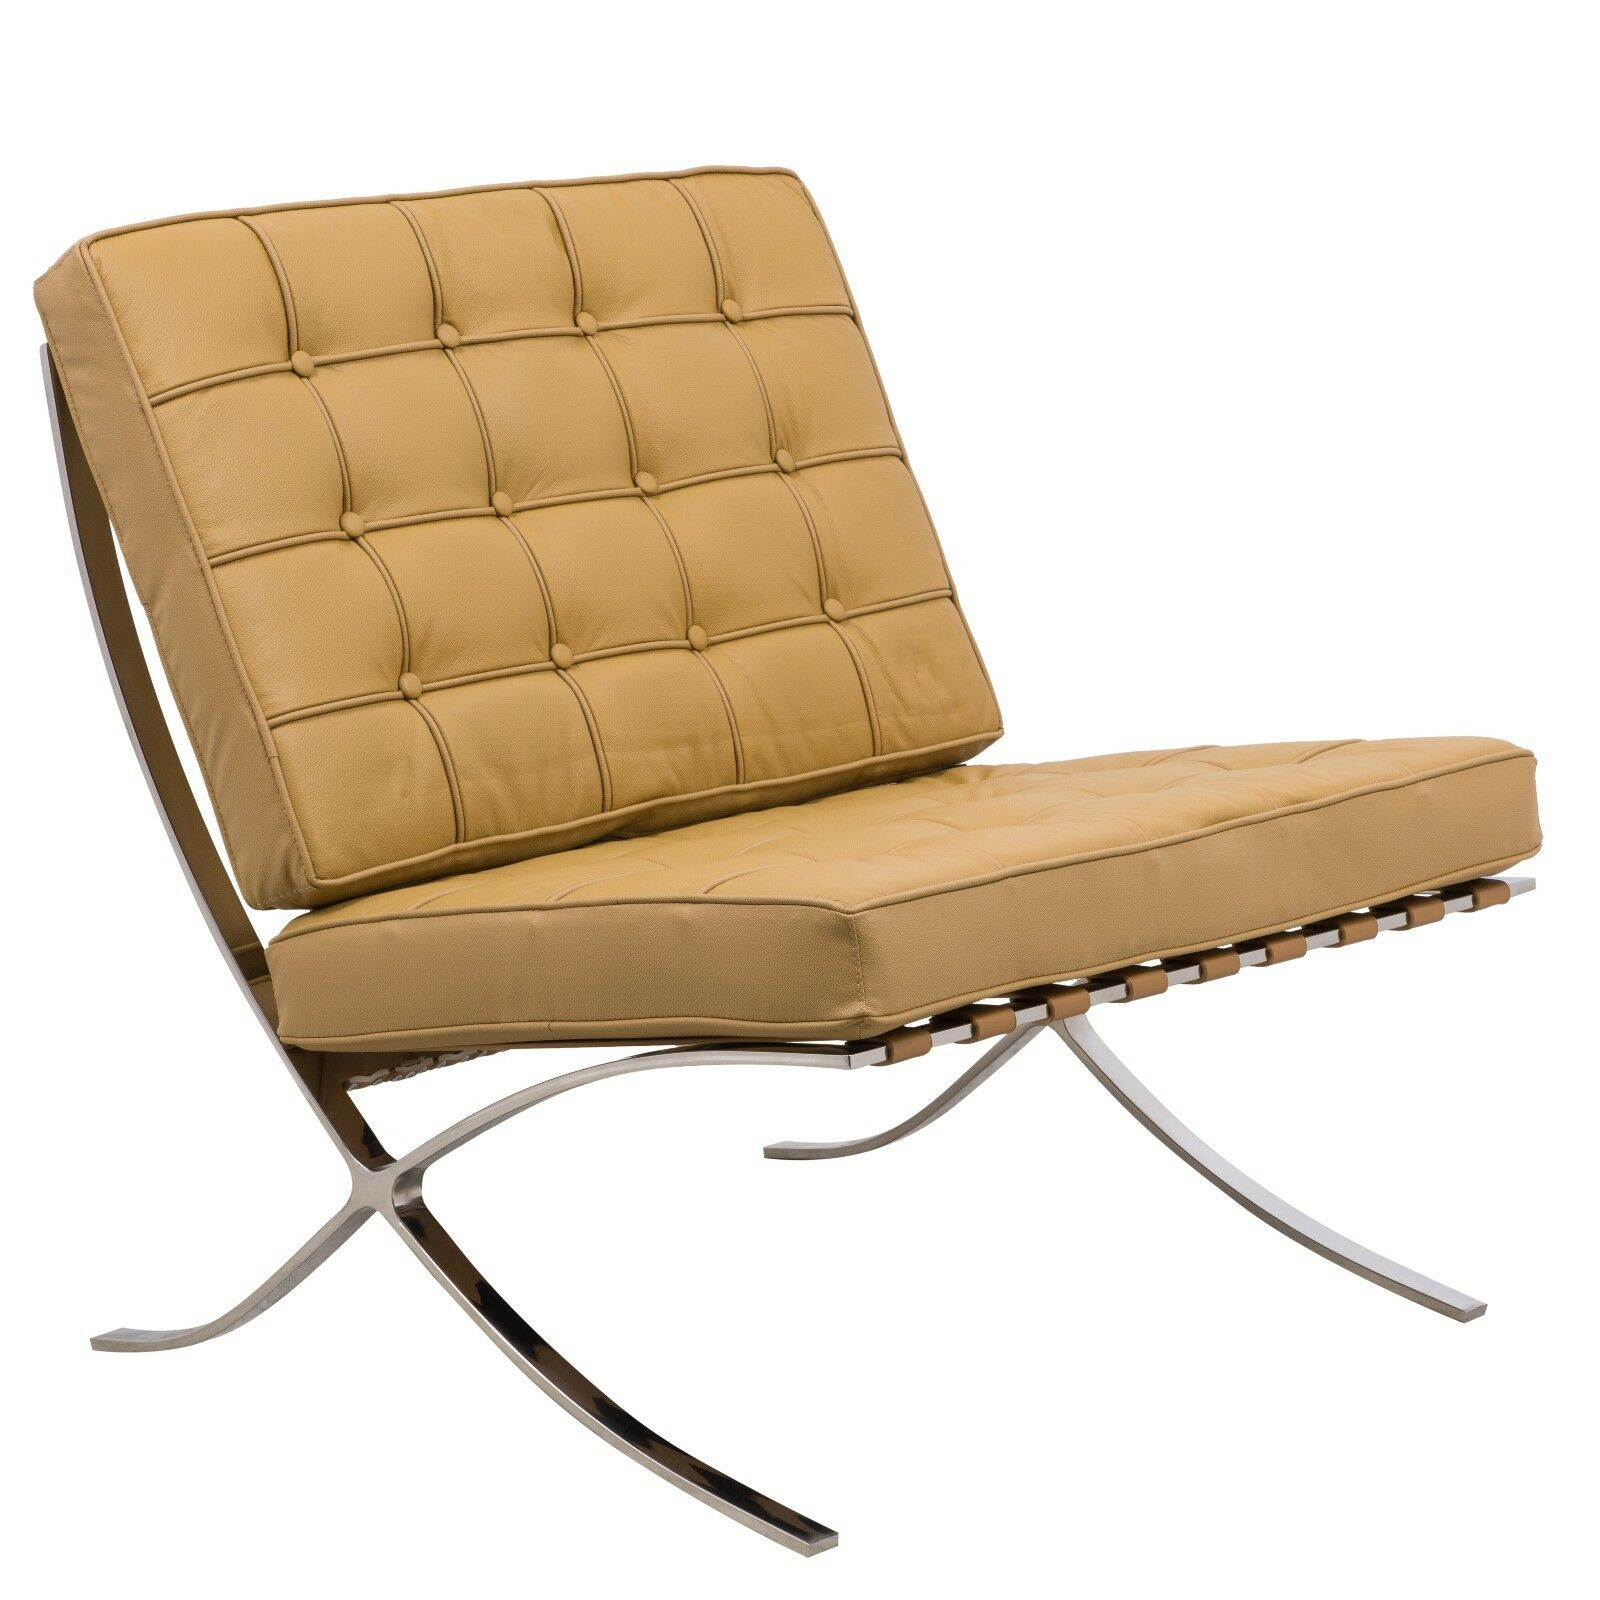 barcelona style modern leather pavilion chair in light brown ebay. Black Bedroom Furniture Sets. Home Design Ideas